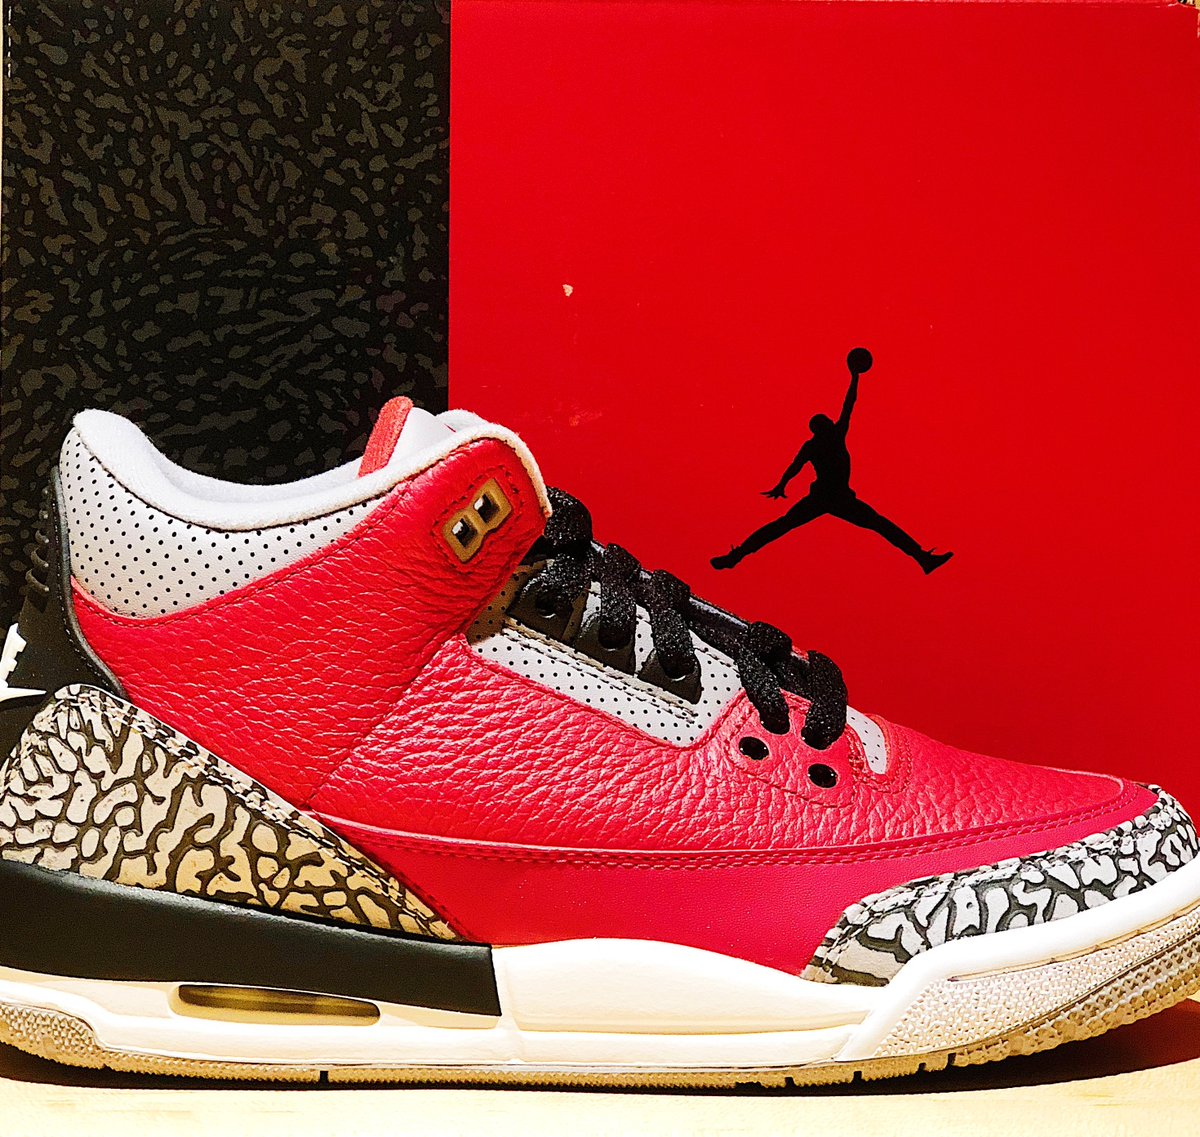 Jordan AJ 3 Retro release @nbastore NYC Saturday, February 15th. [Youth only]